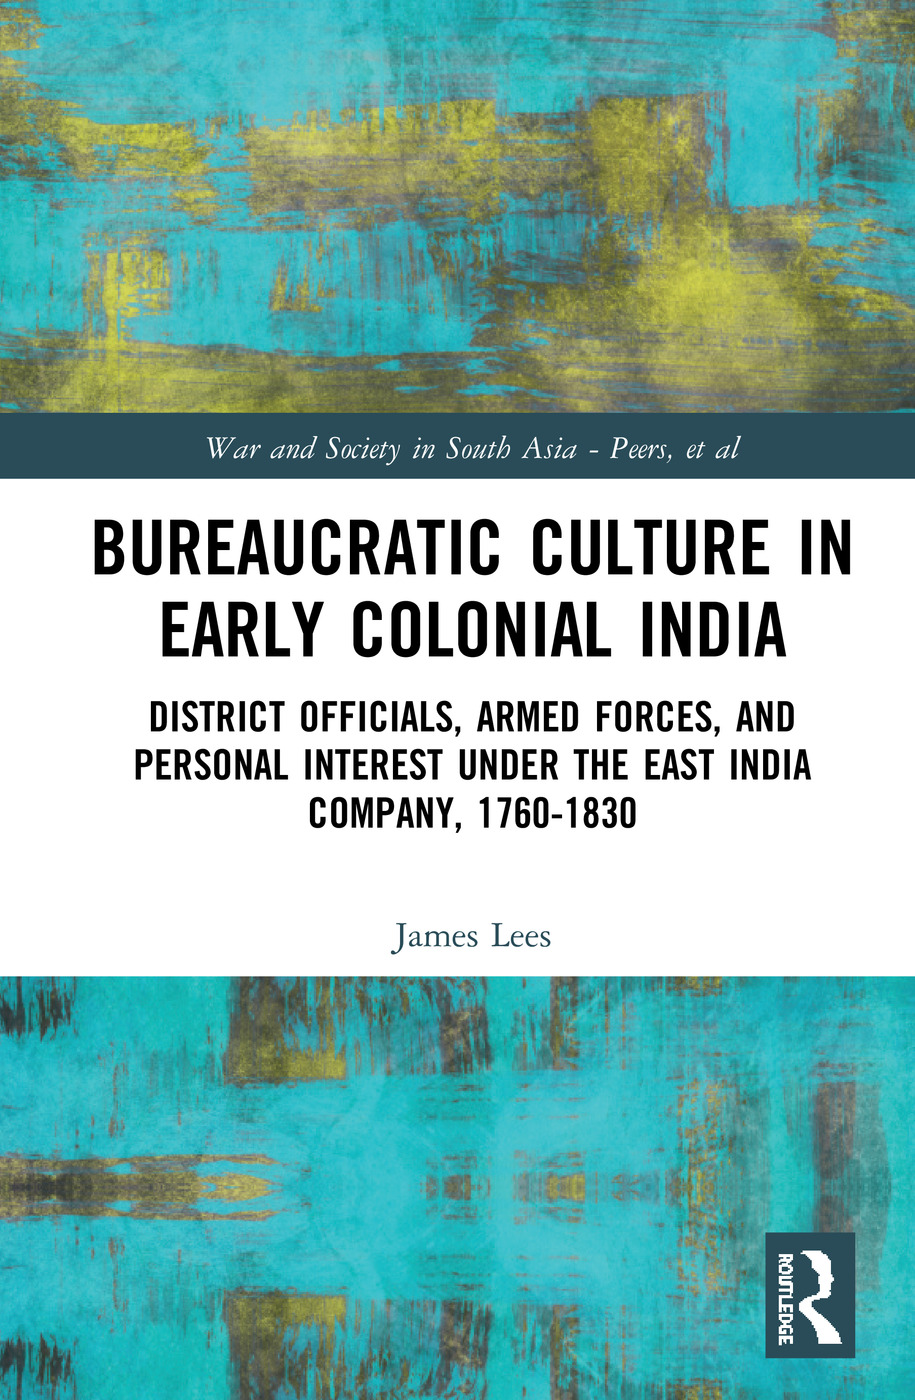 Bureaucratic Culture in Early Colonial India: District Officials, Armed Forces, and Personal Interest under the East India Company, 1760-1830 book cover